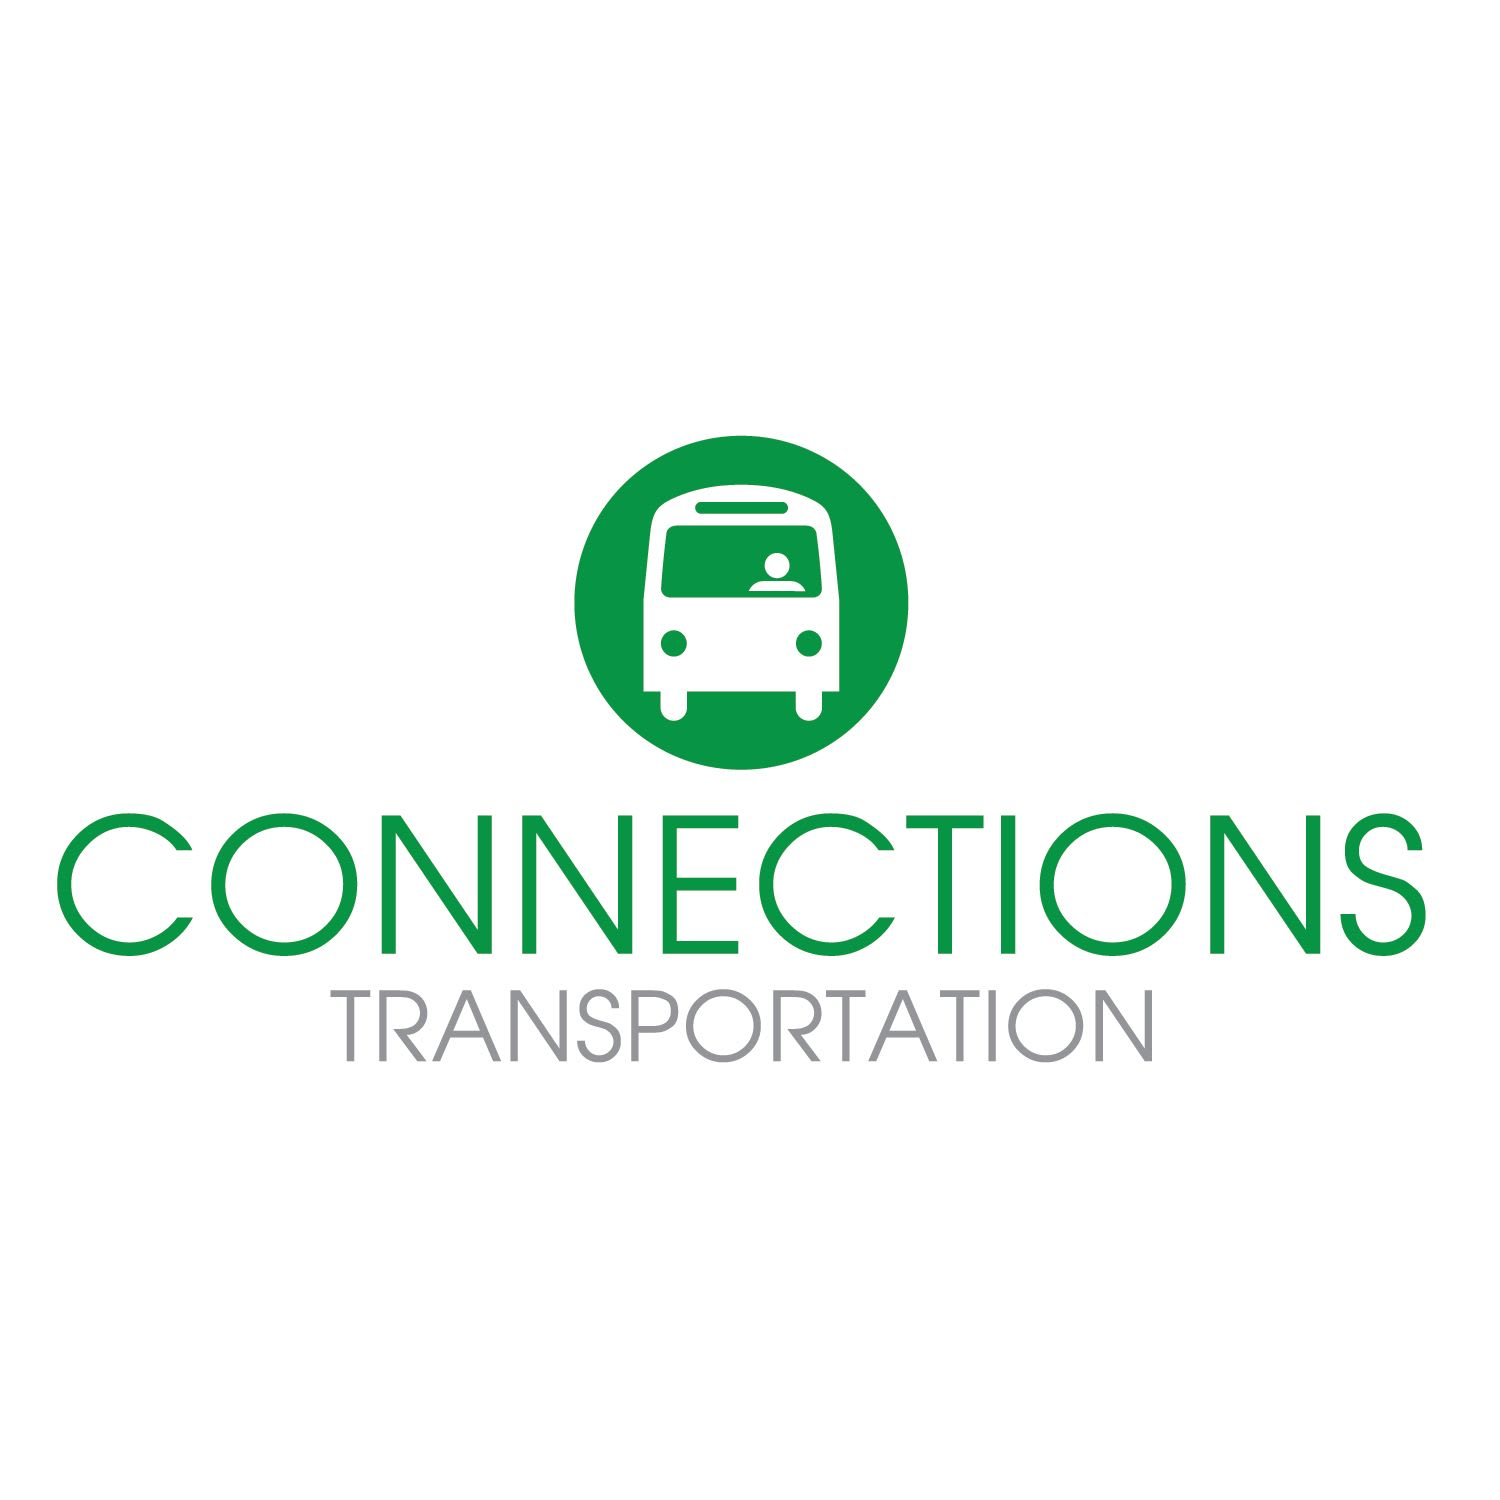 Senior living connections in Tampa for transportation and maintenance.